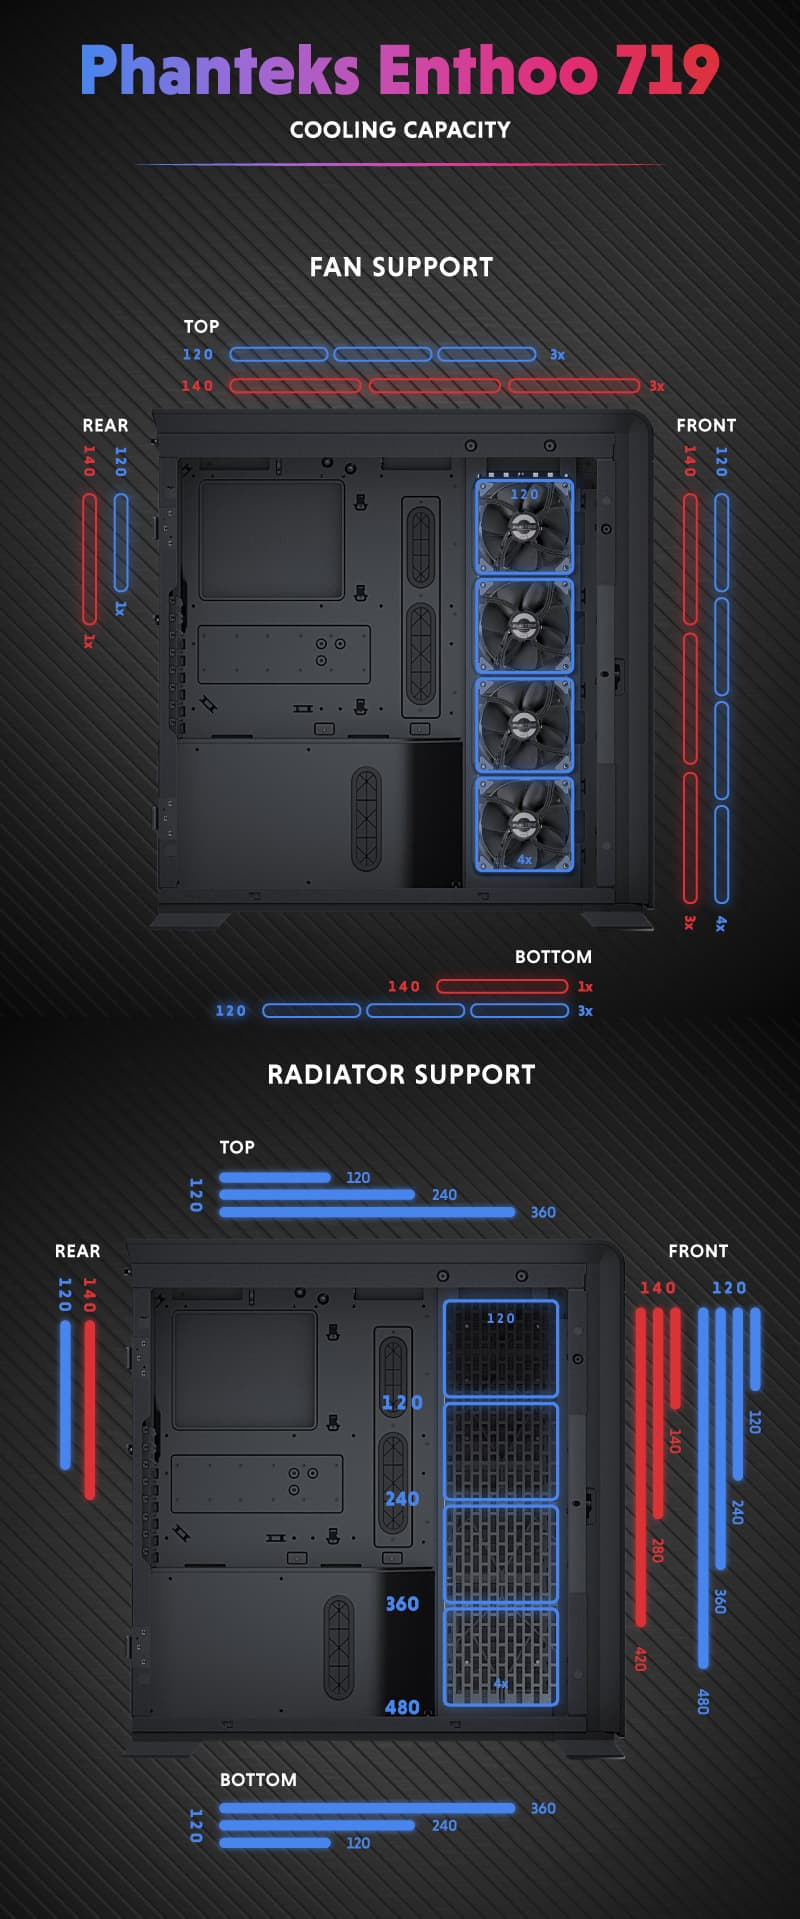 Phanteks Enthoo 719 Cooling Capacity 1